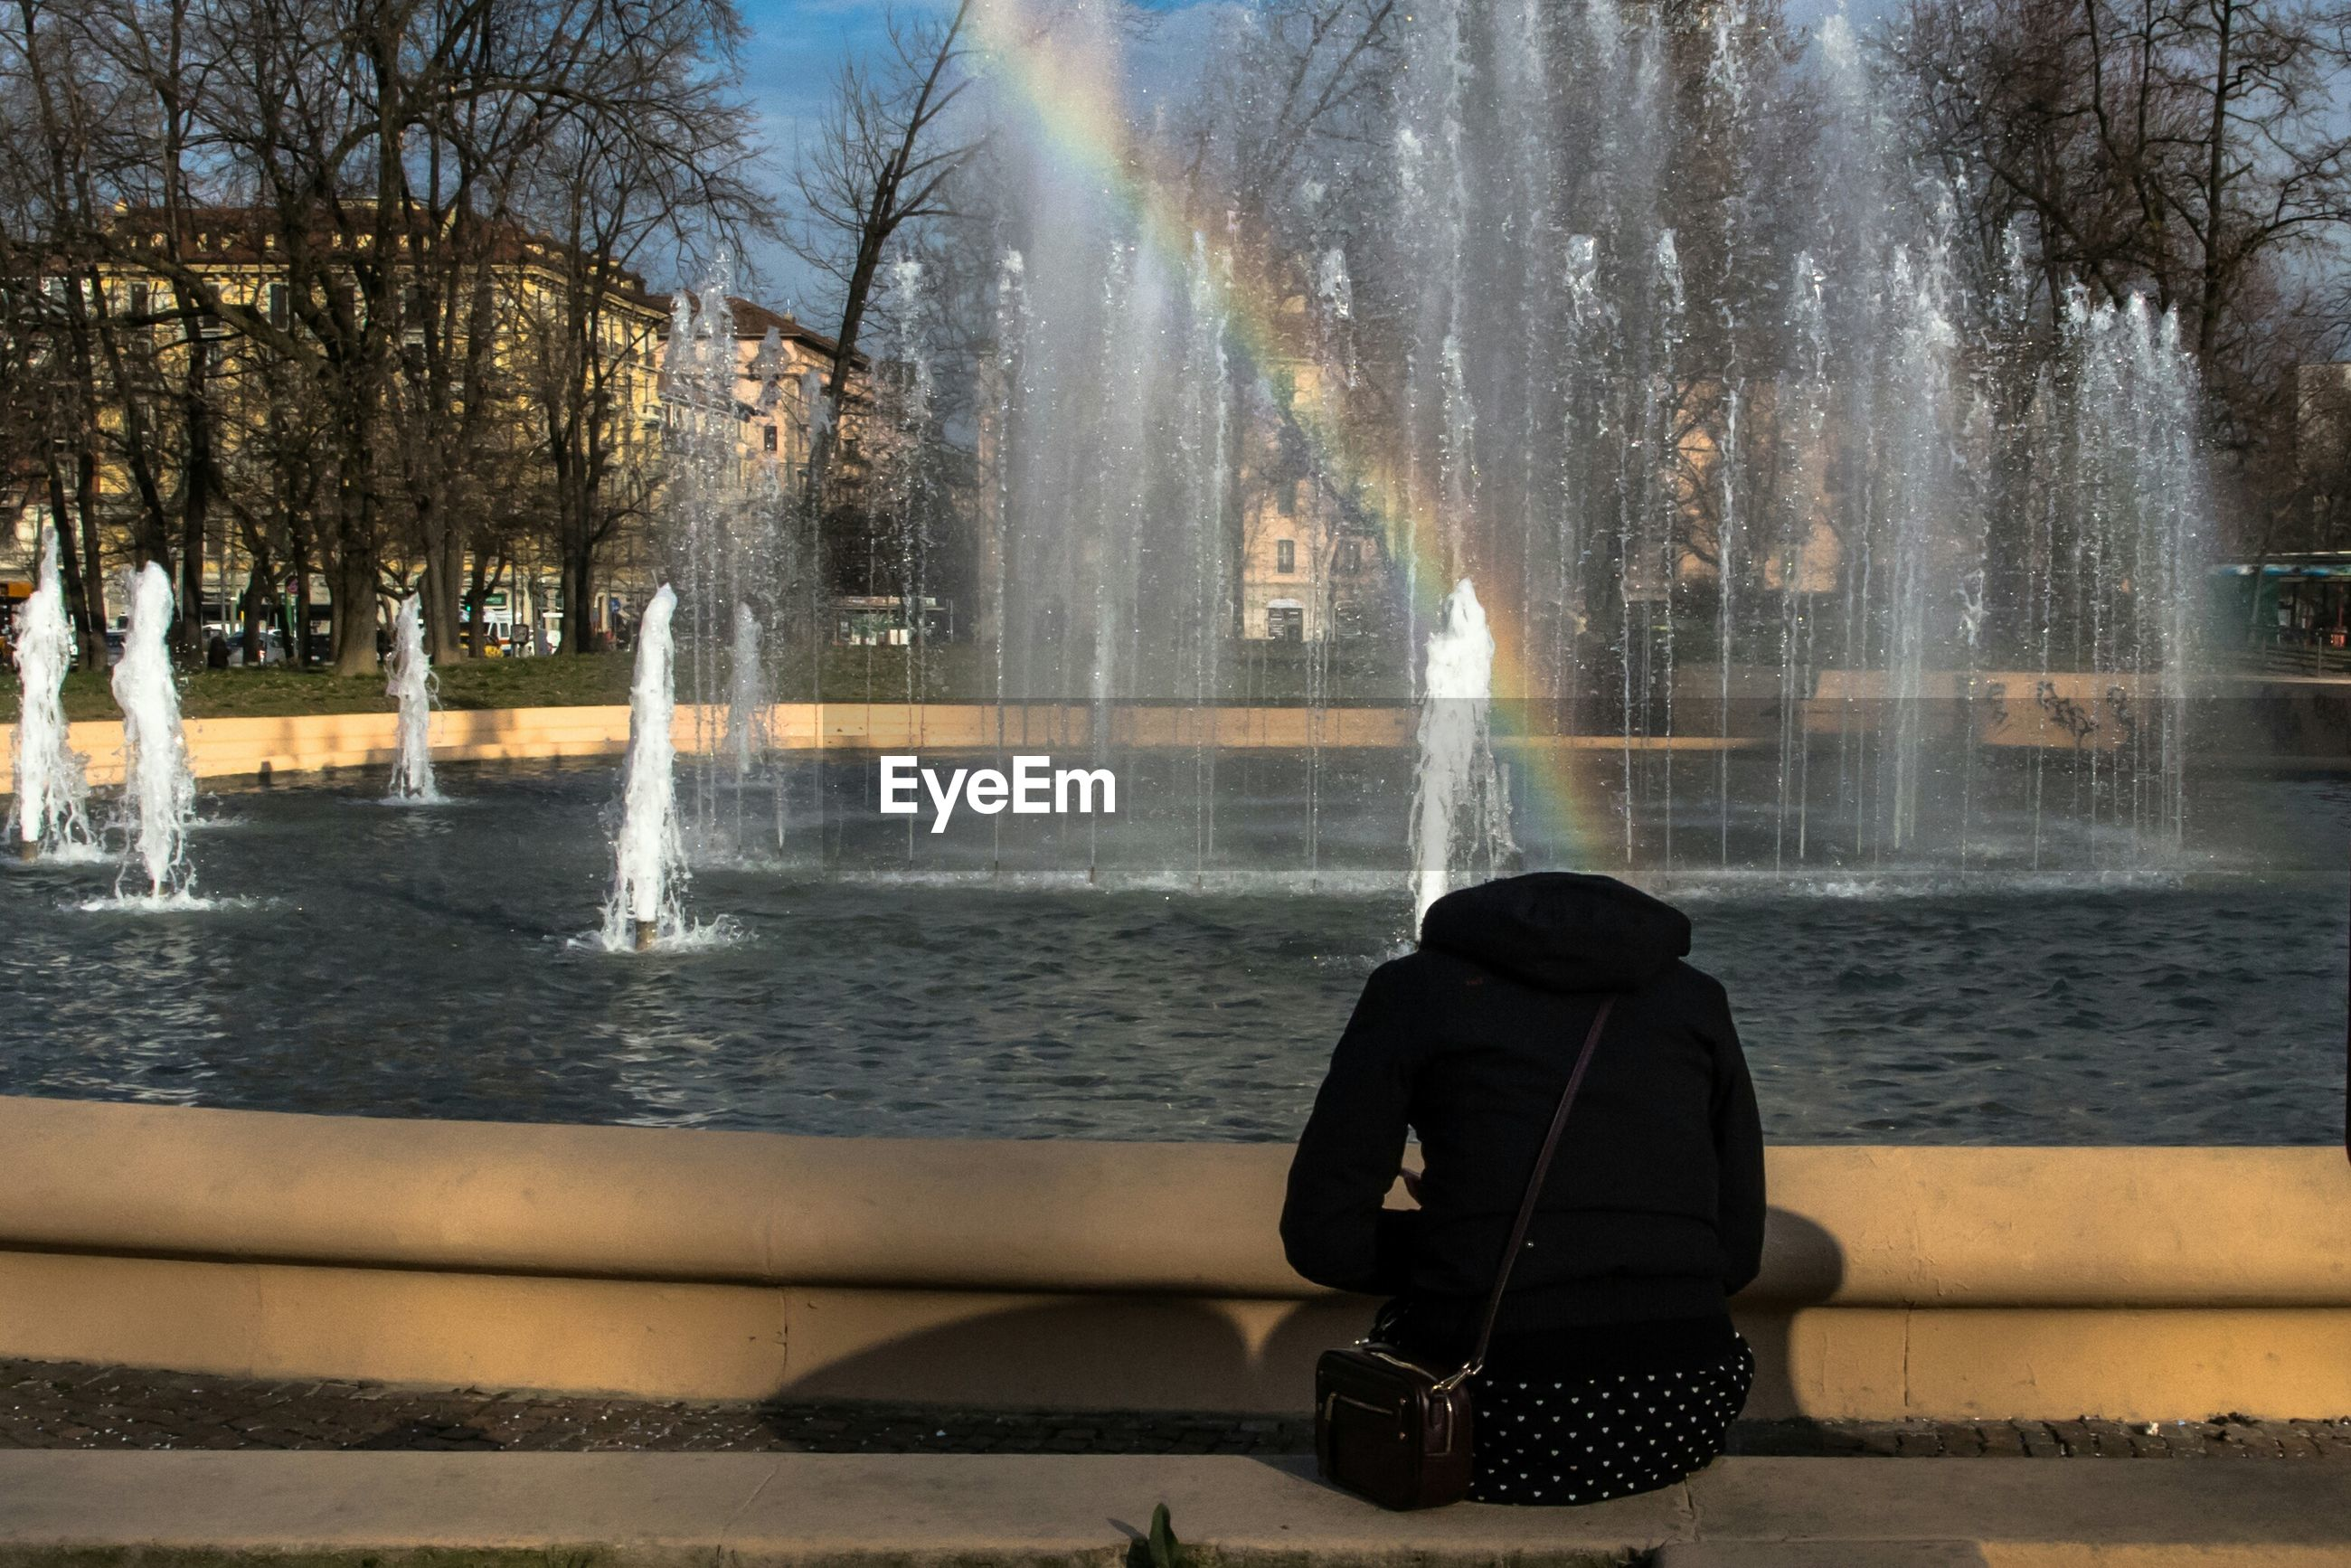 Rear view of woman sitting by fountain in park